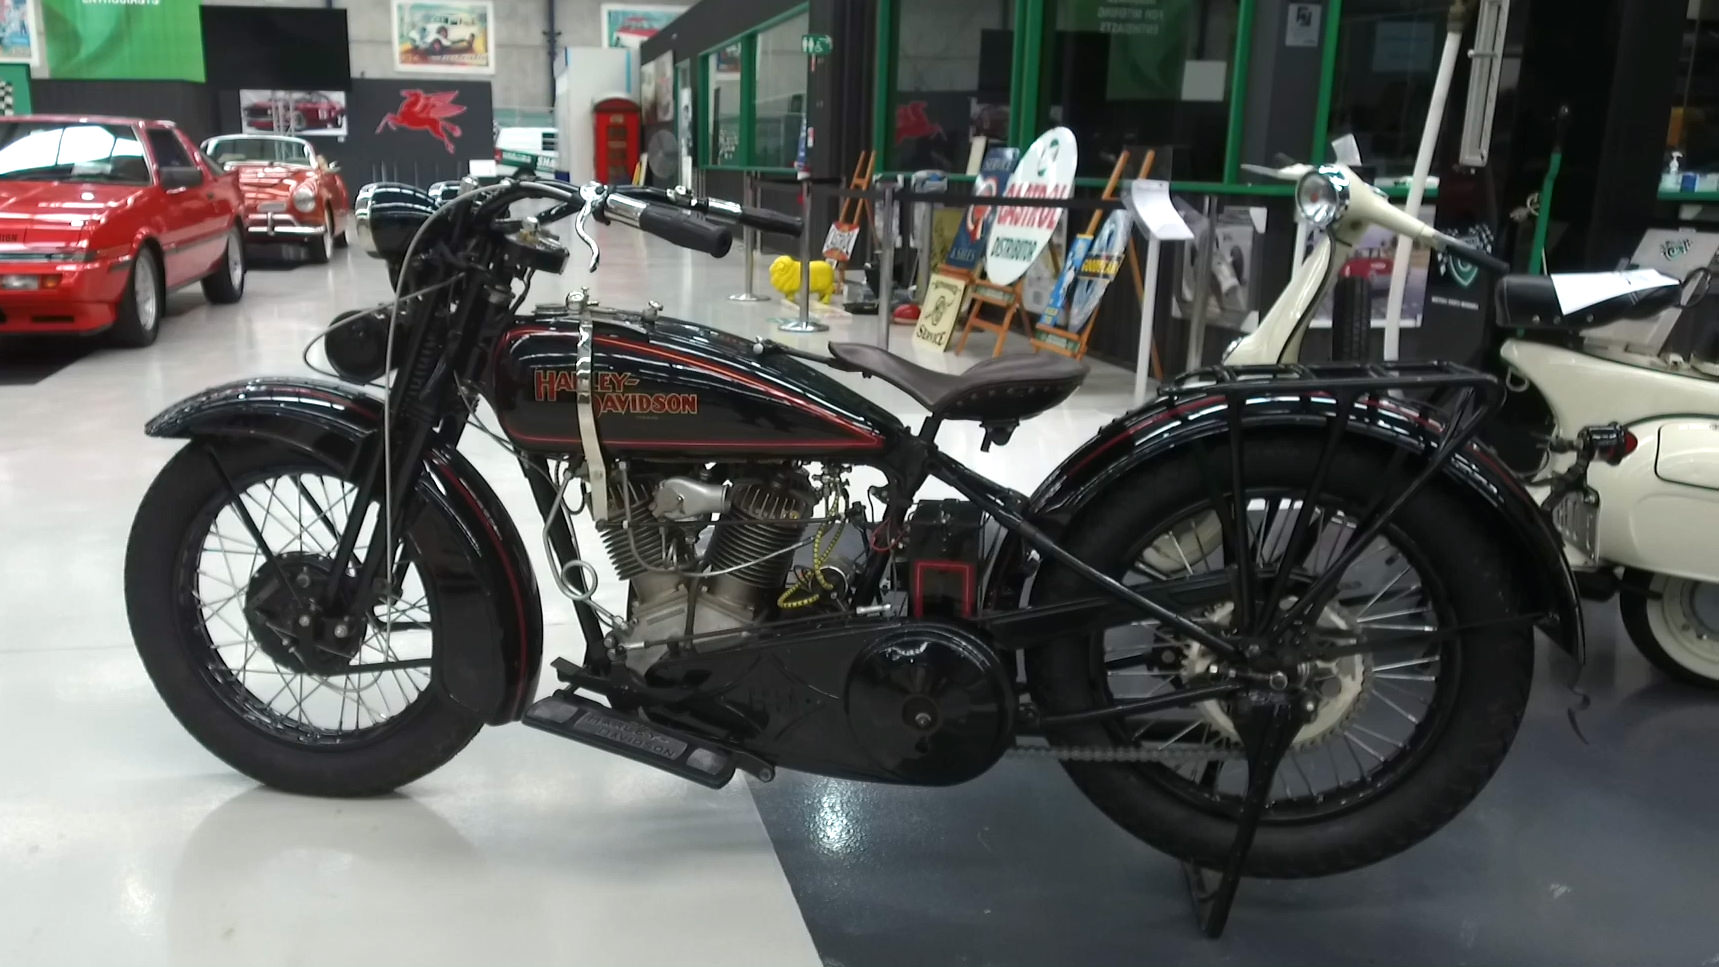 1929 Harley-Davidson J Model 1000cc V-Twin Motorcycle - 2021 Shannons Summer Timed Online Auction